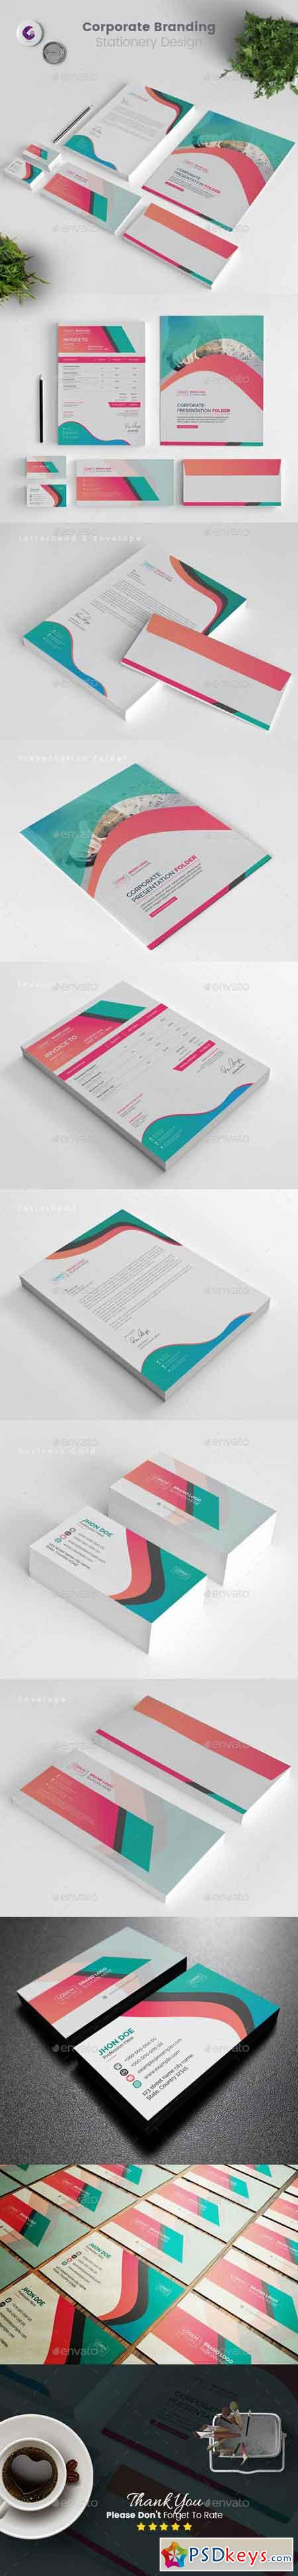 Corporate Stationery 22967783